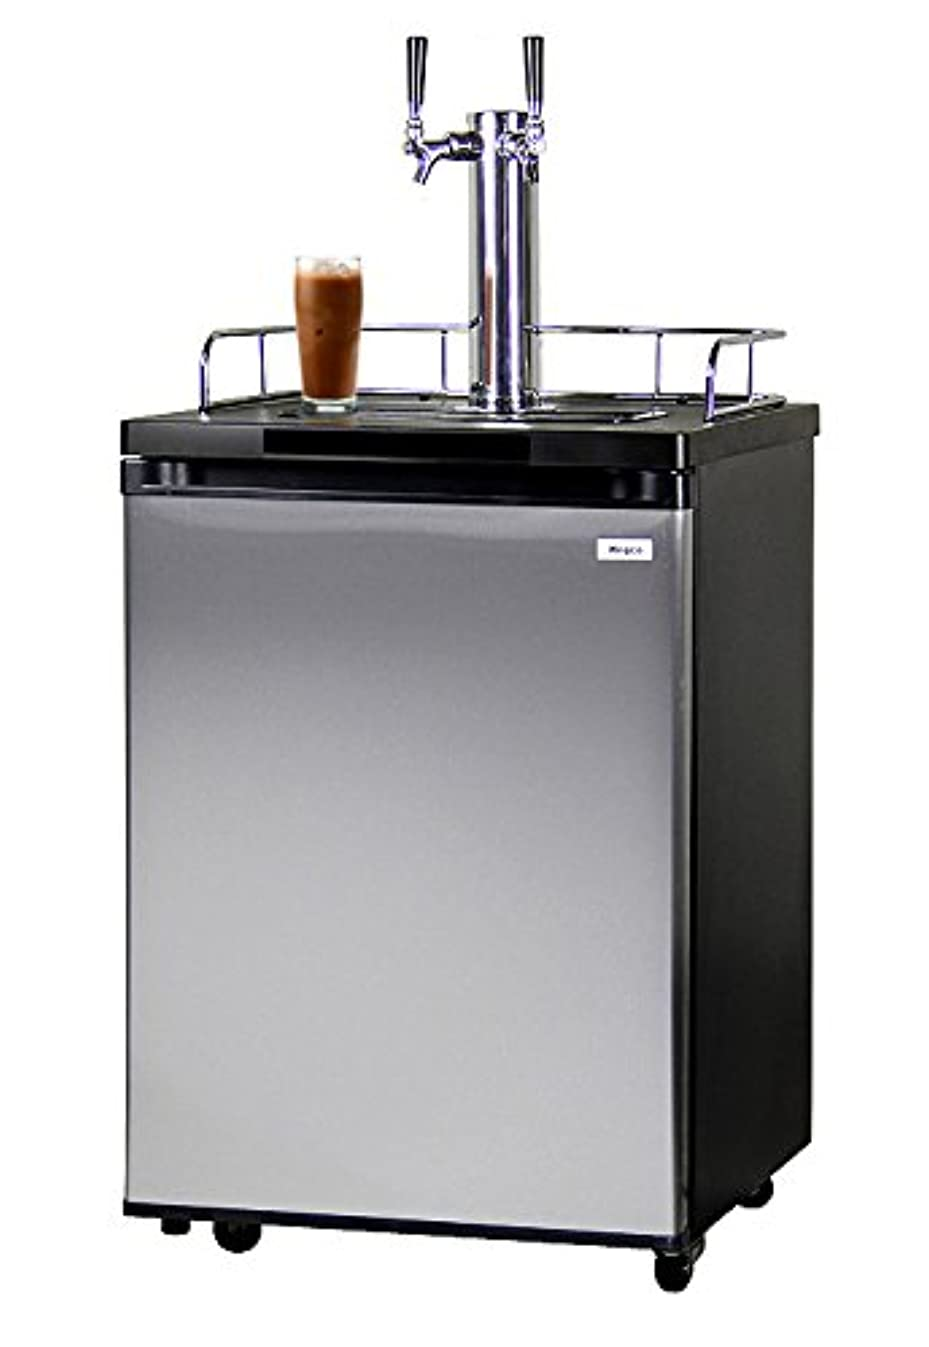 Kegco ICK20S-2 Double Faucet Javarator Cold-Brew Coffee Dispenser - Black/Stainless Steel